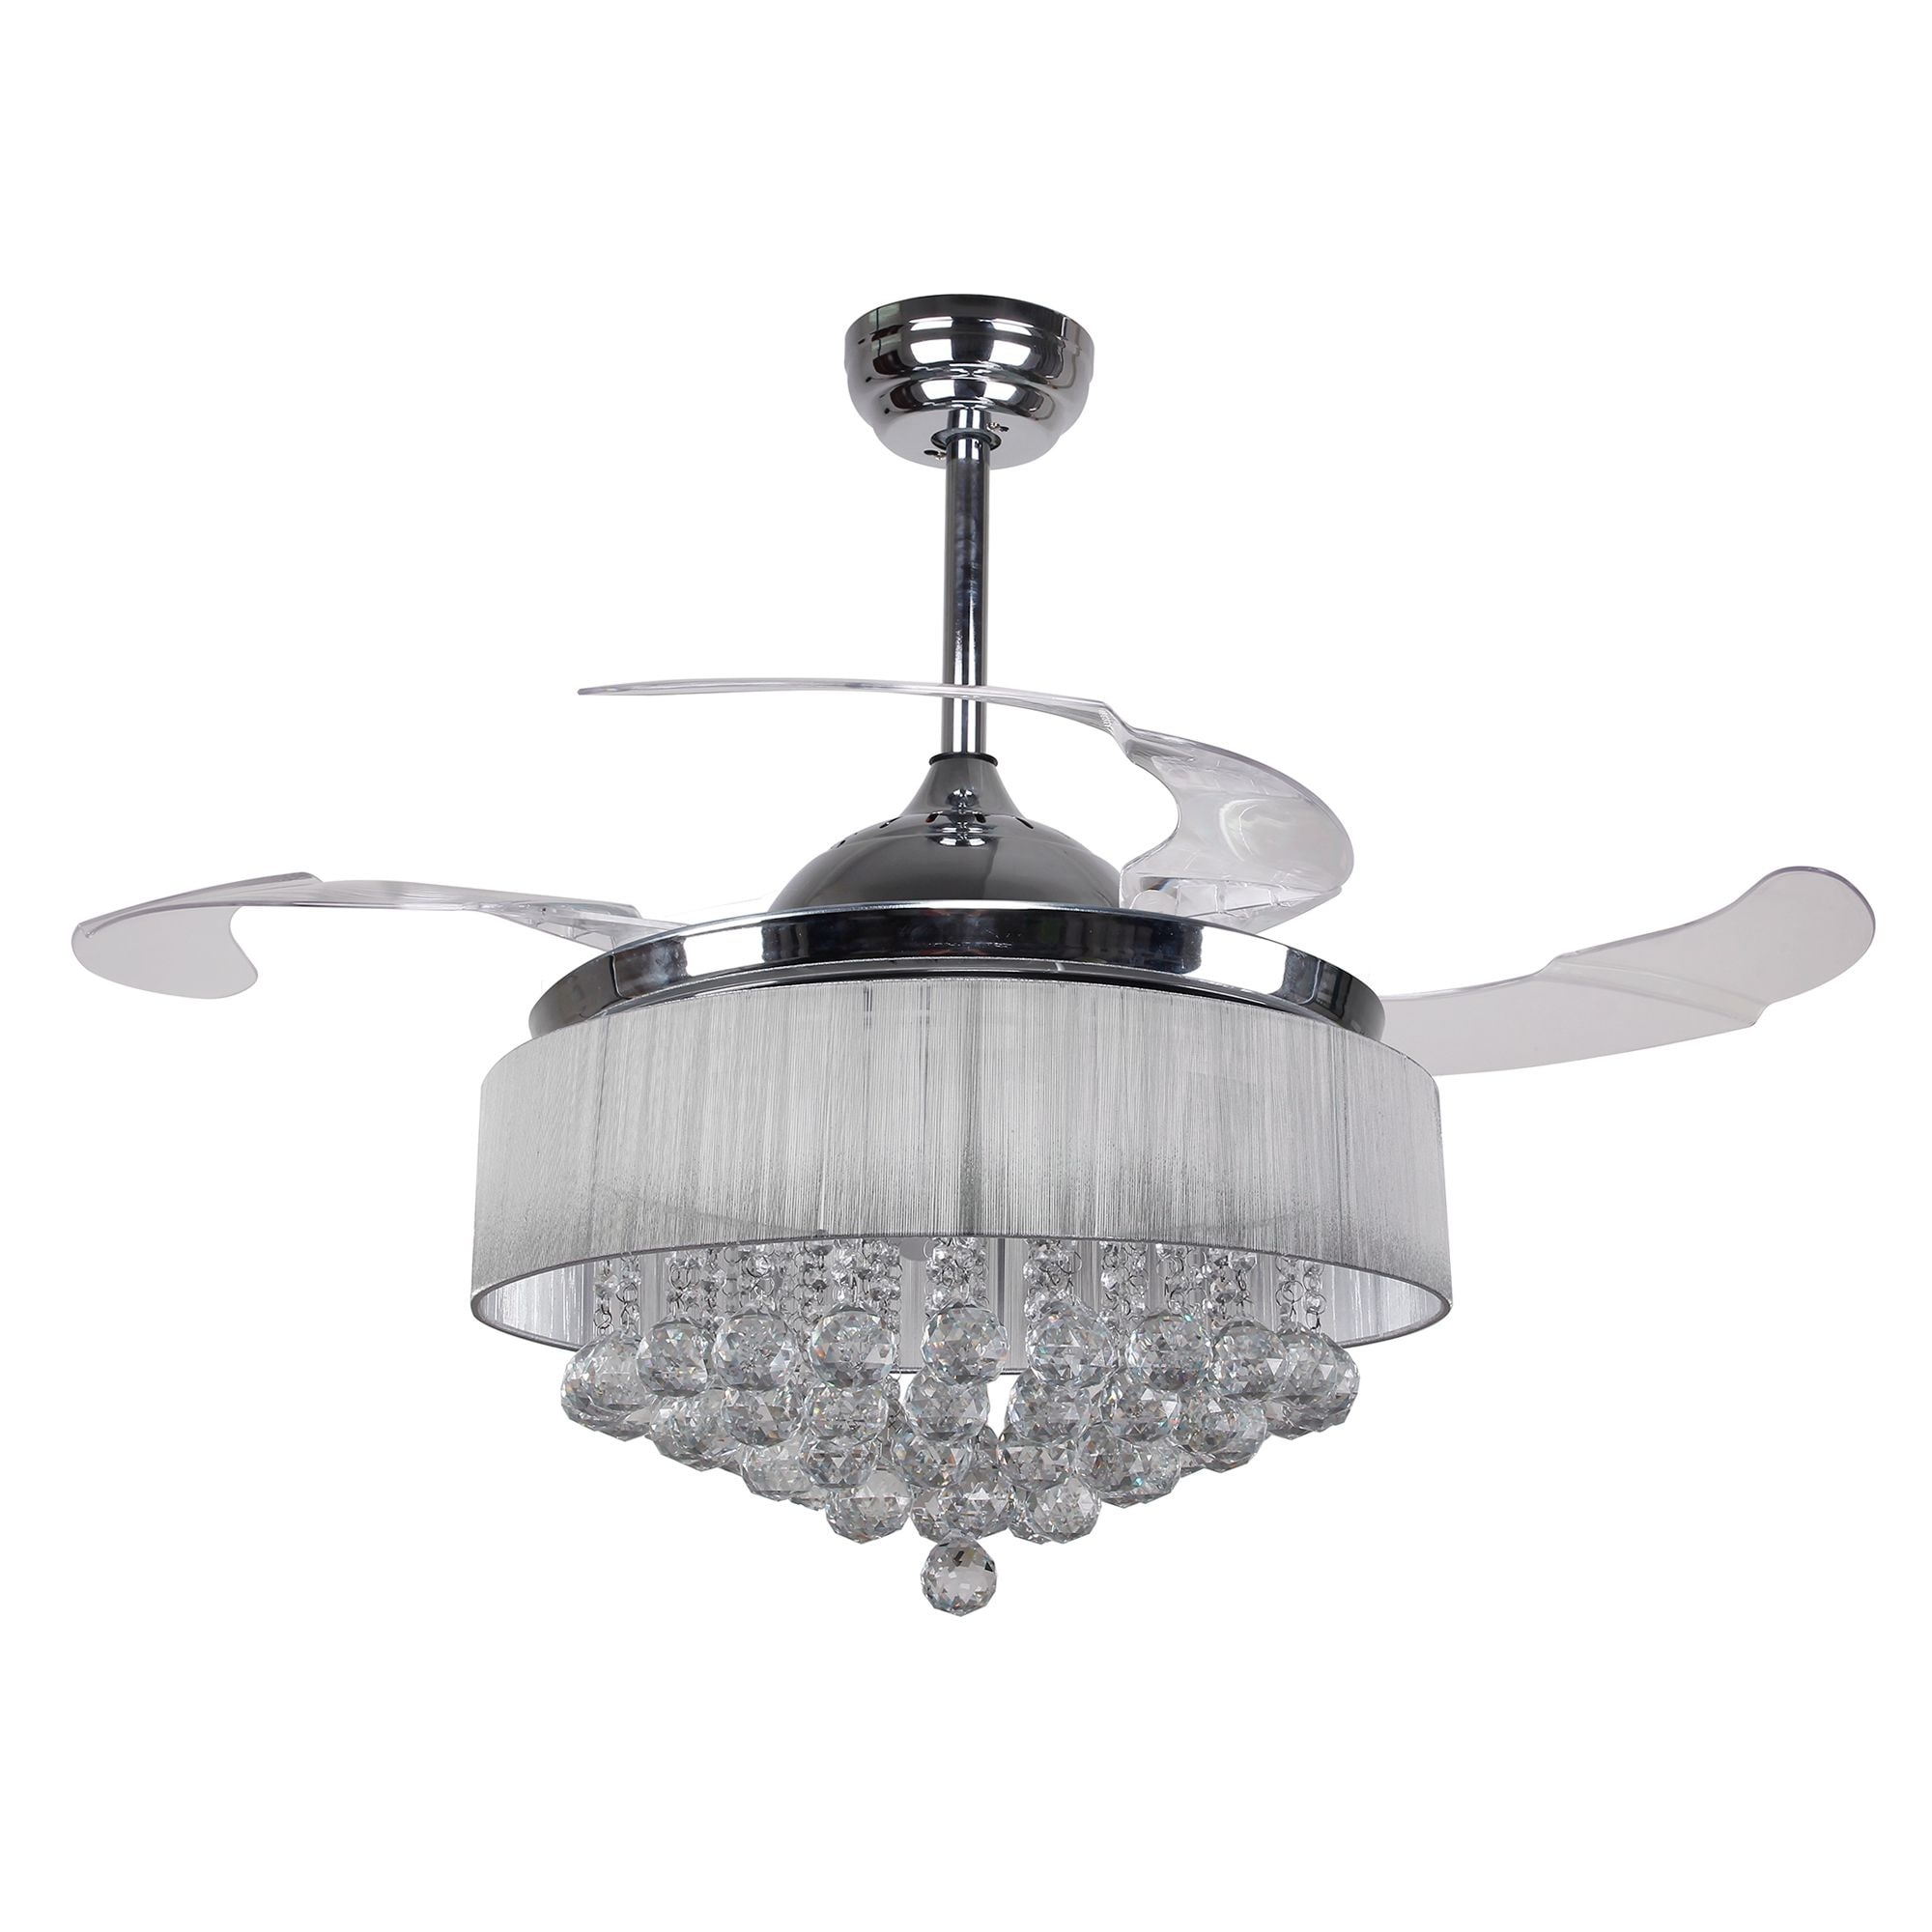 Modern 42 5 inch Foldable 4 Blades LED Ceiling Fans Crystal